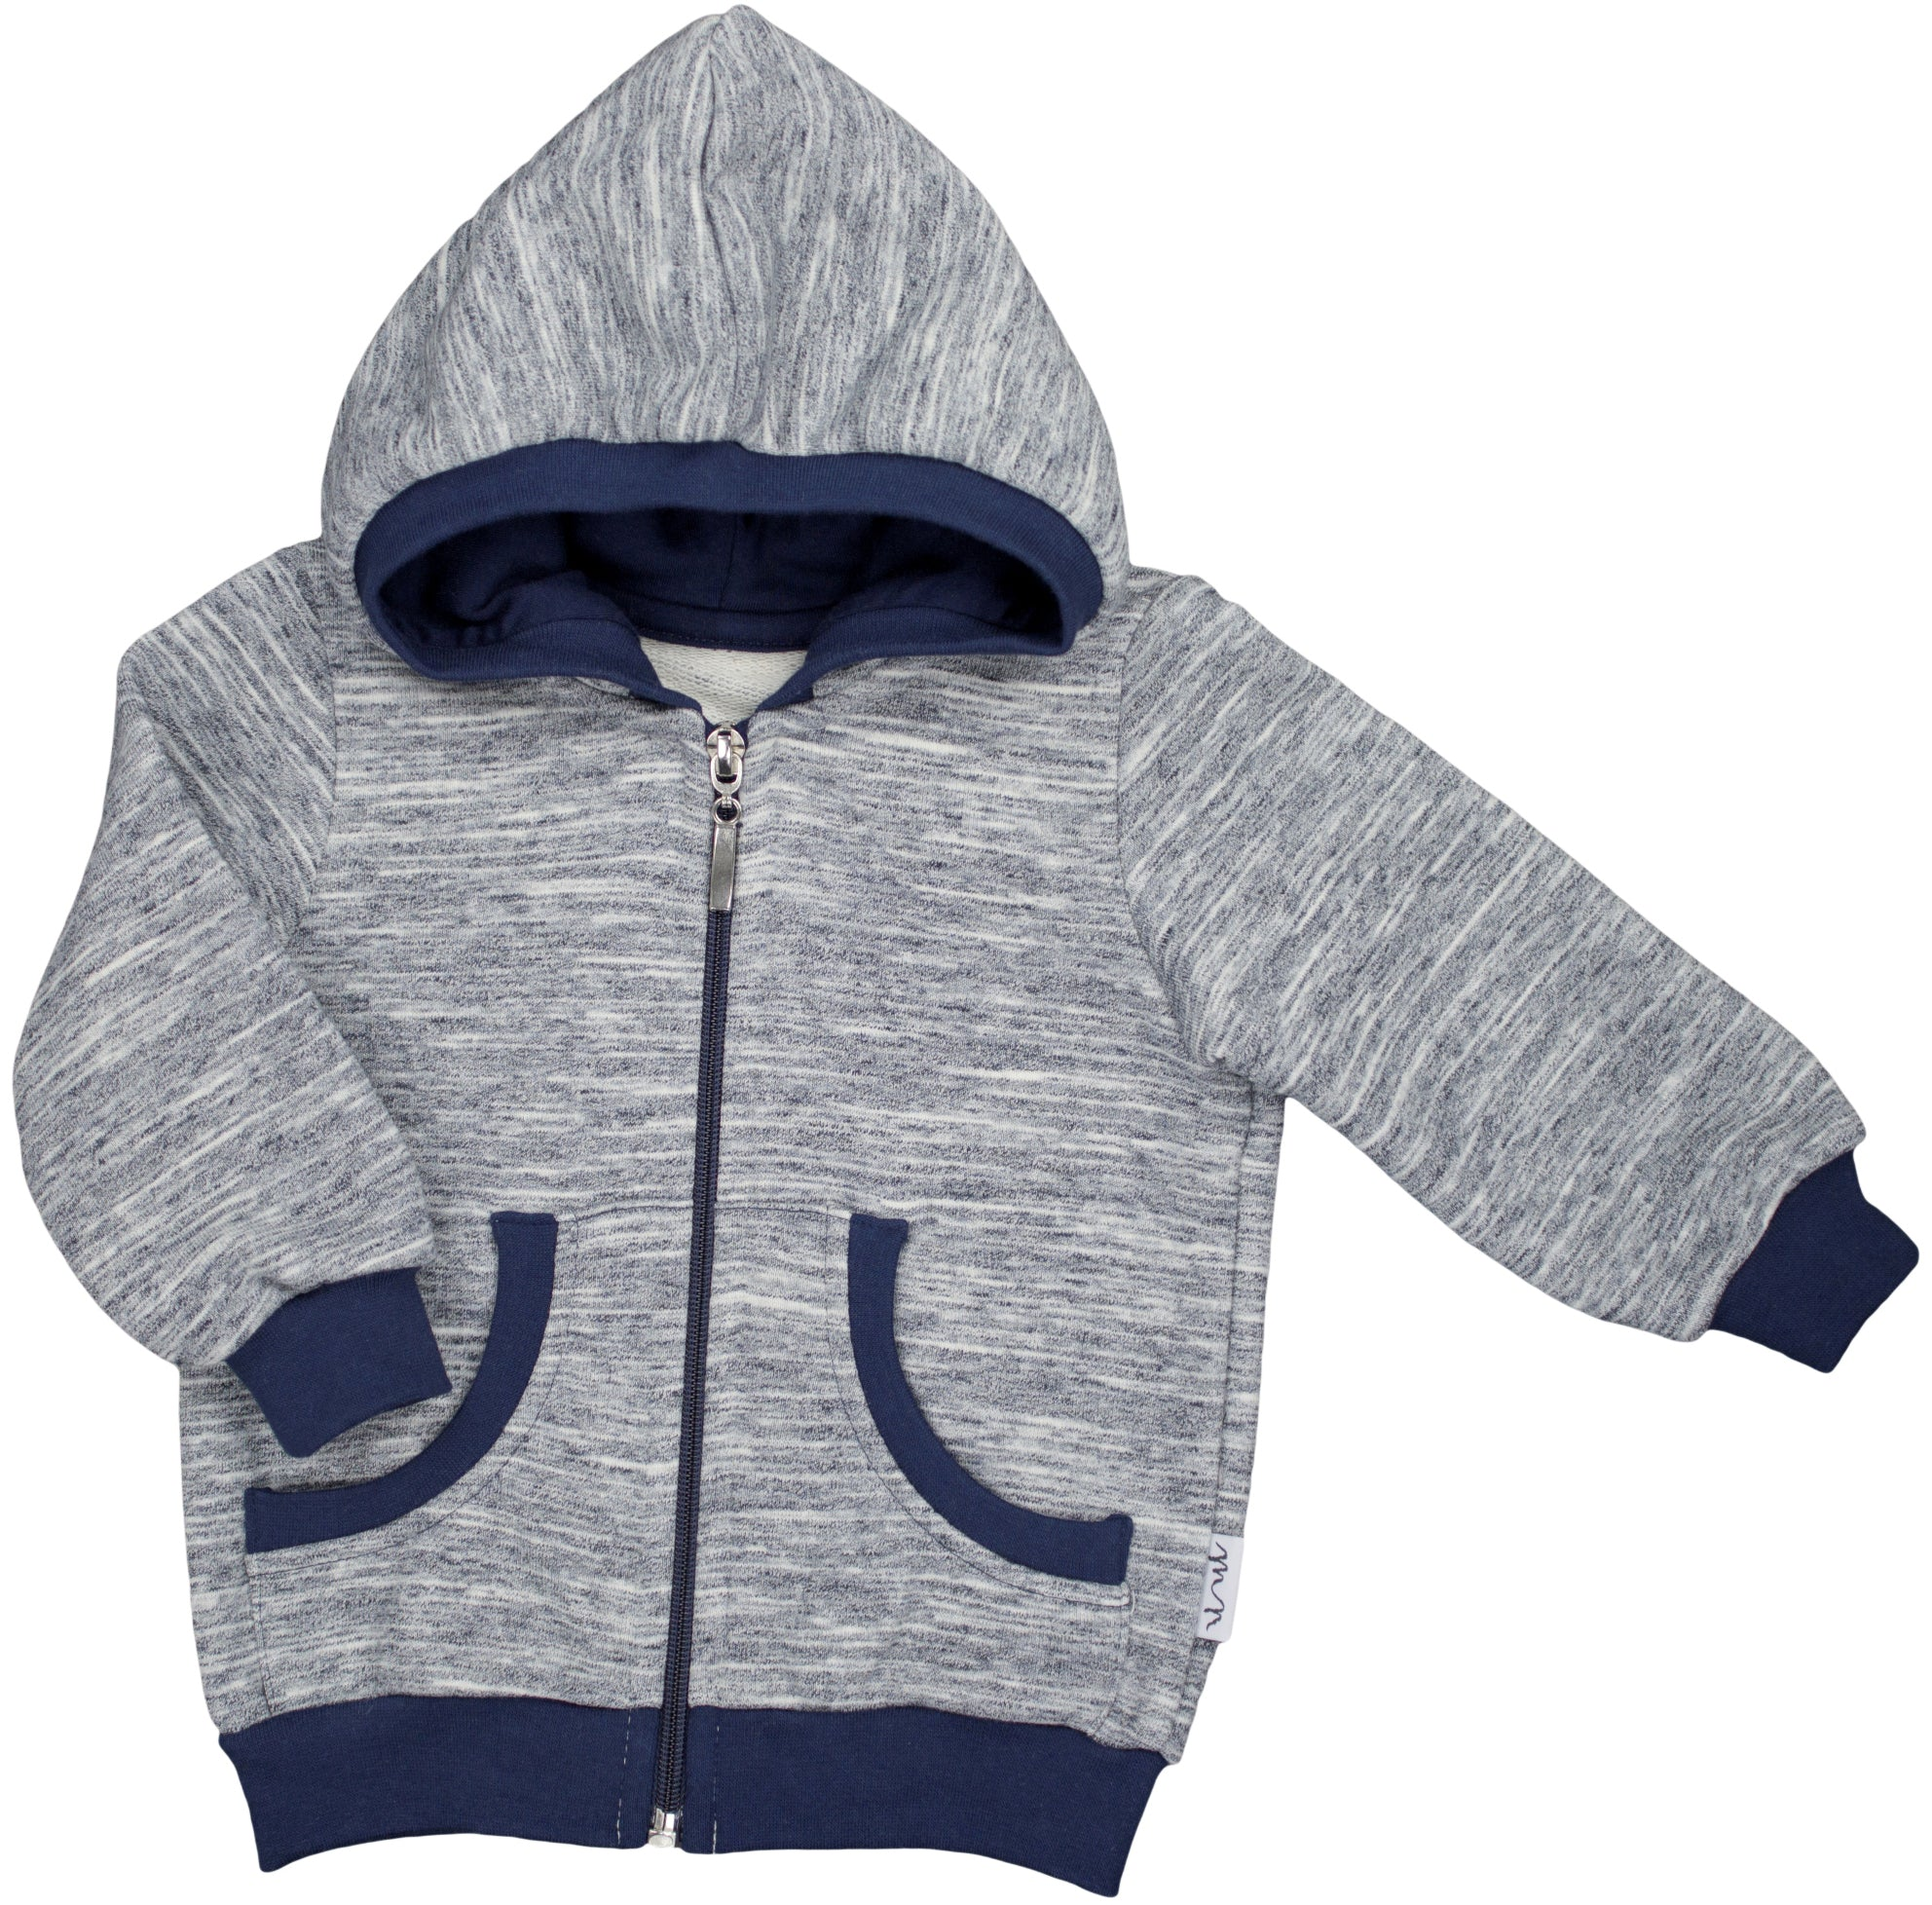 BOYS GRAY NAVY SWEATSHIRT